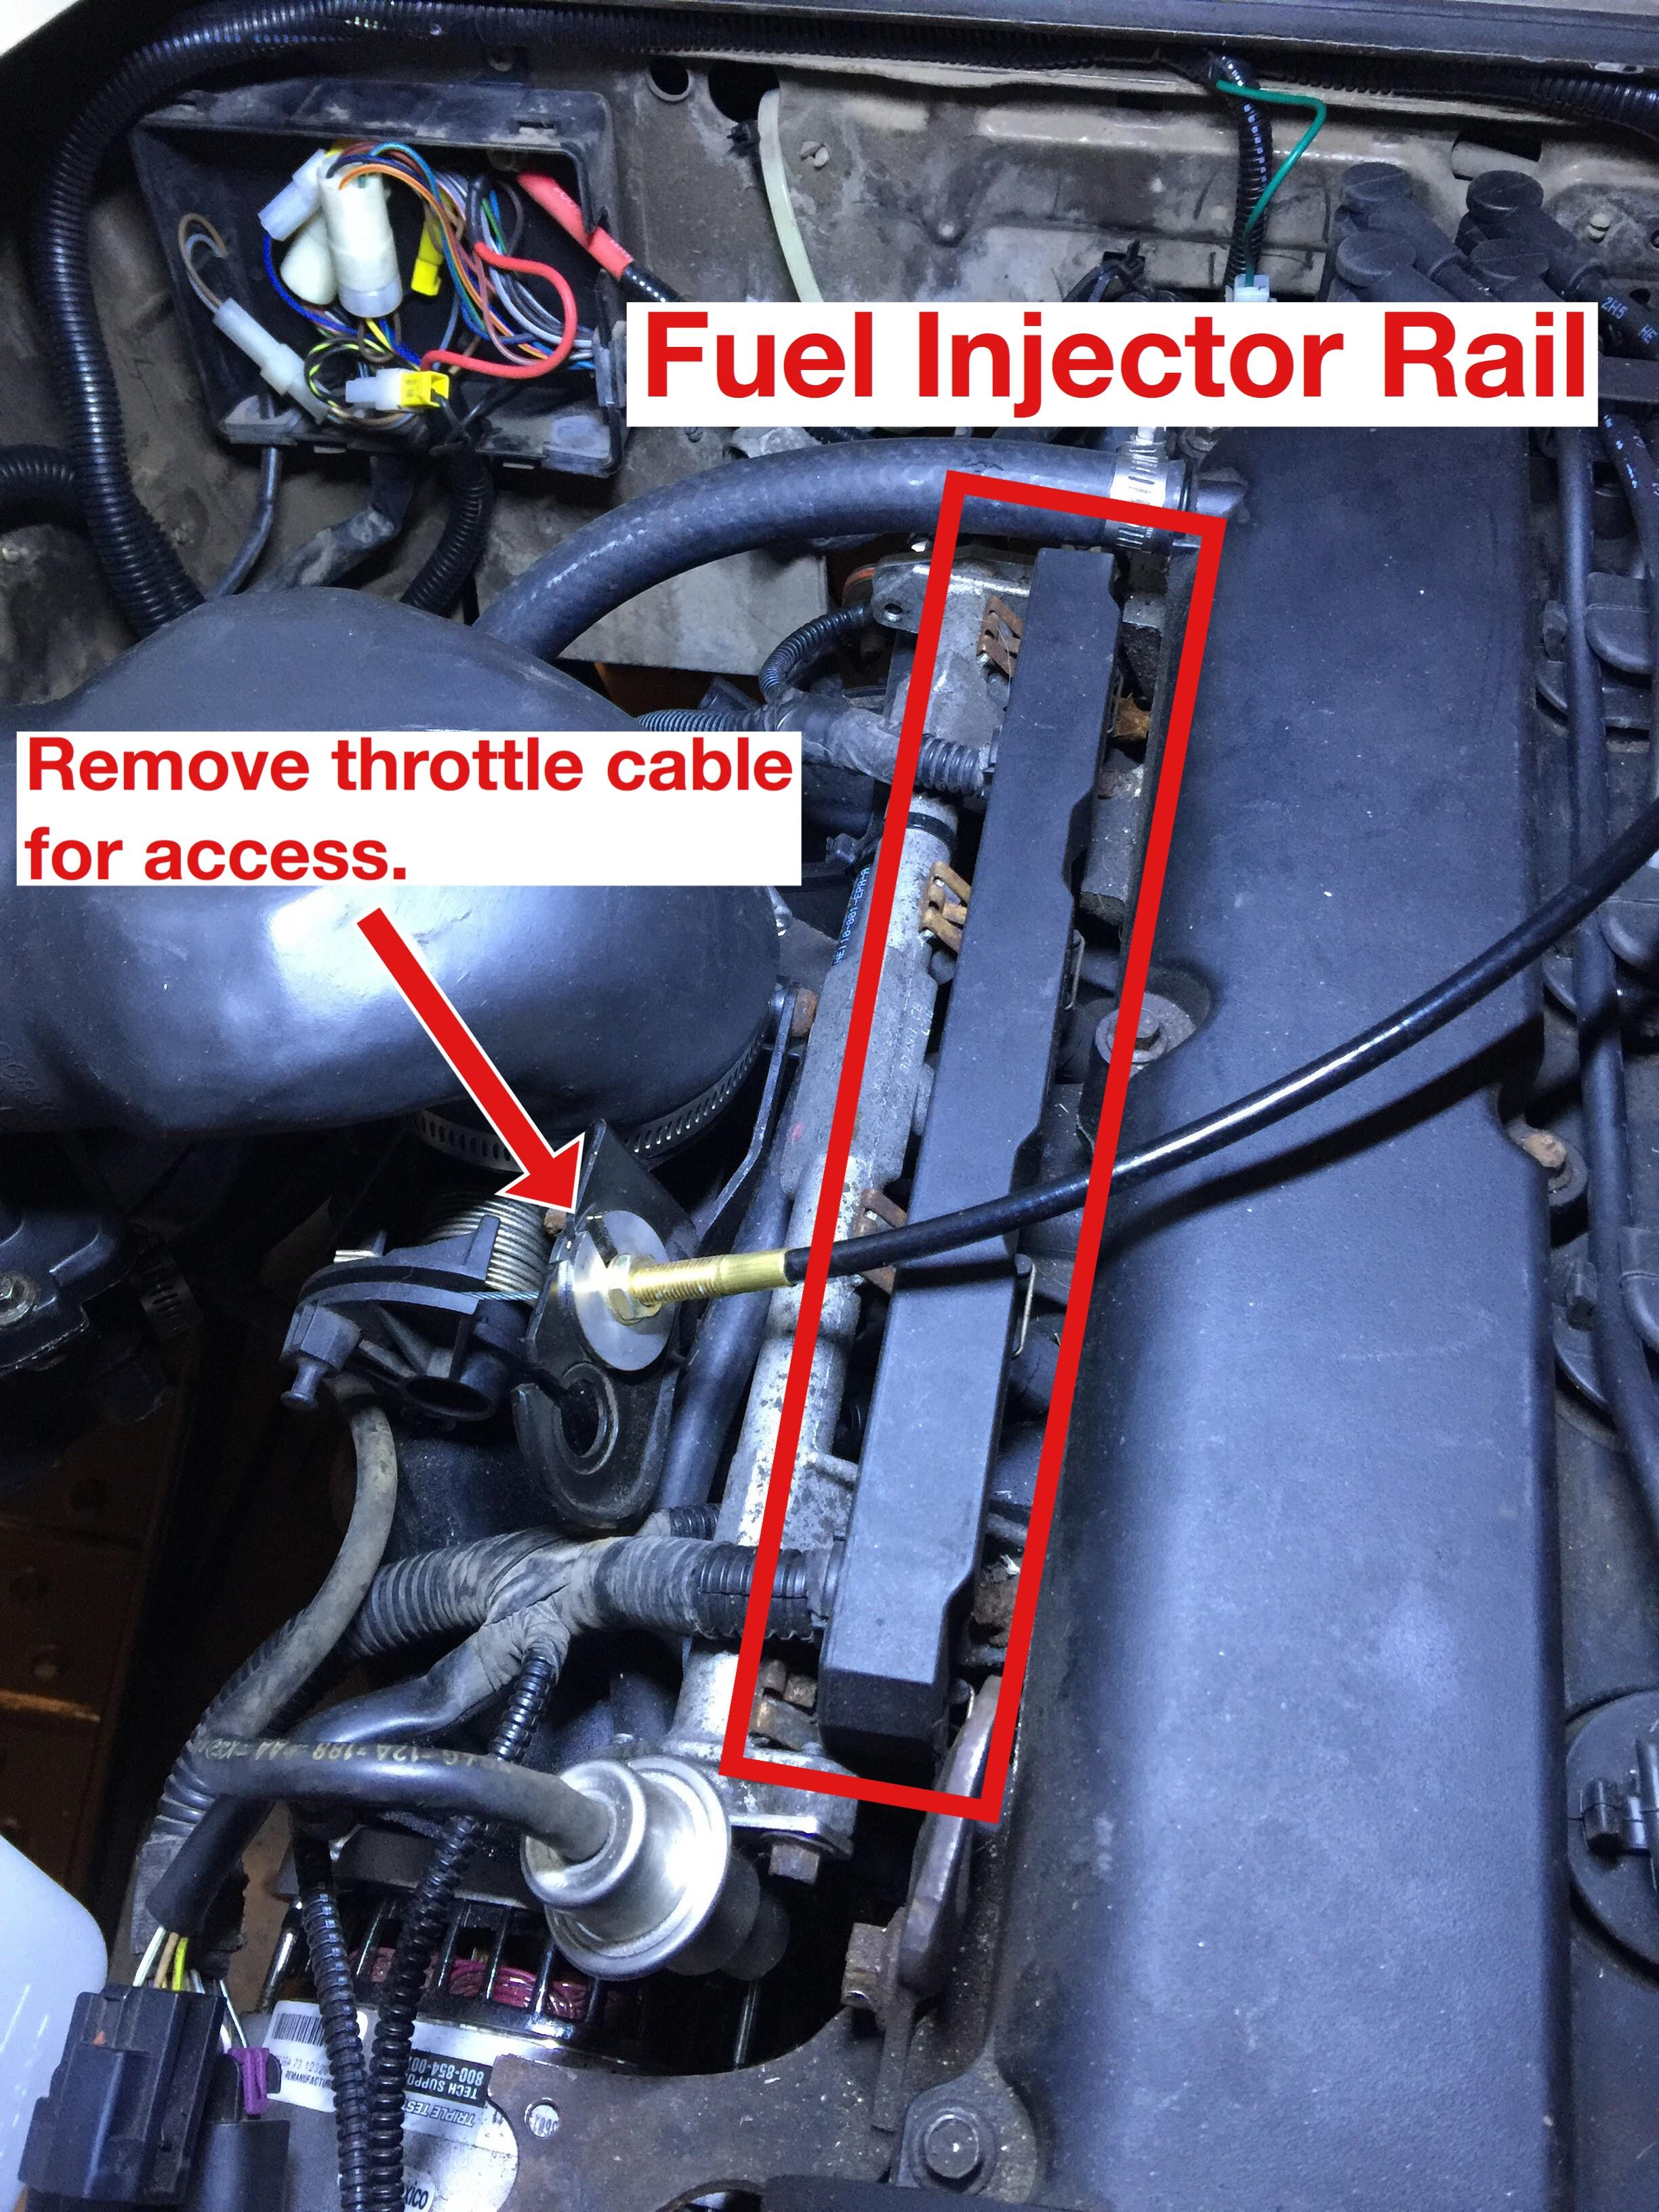 remove-fuel-injector-rail-1.JPG